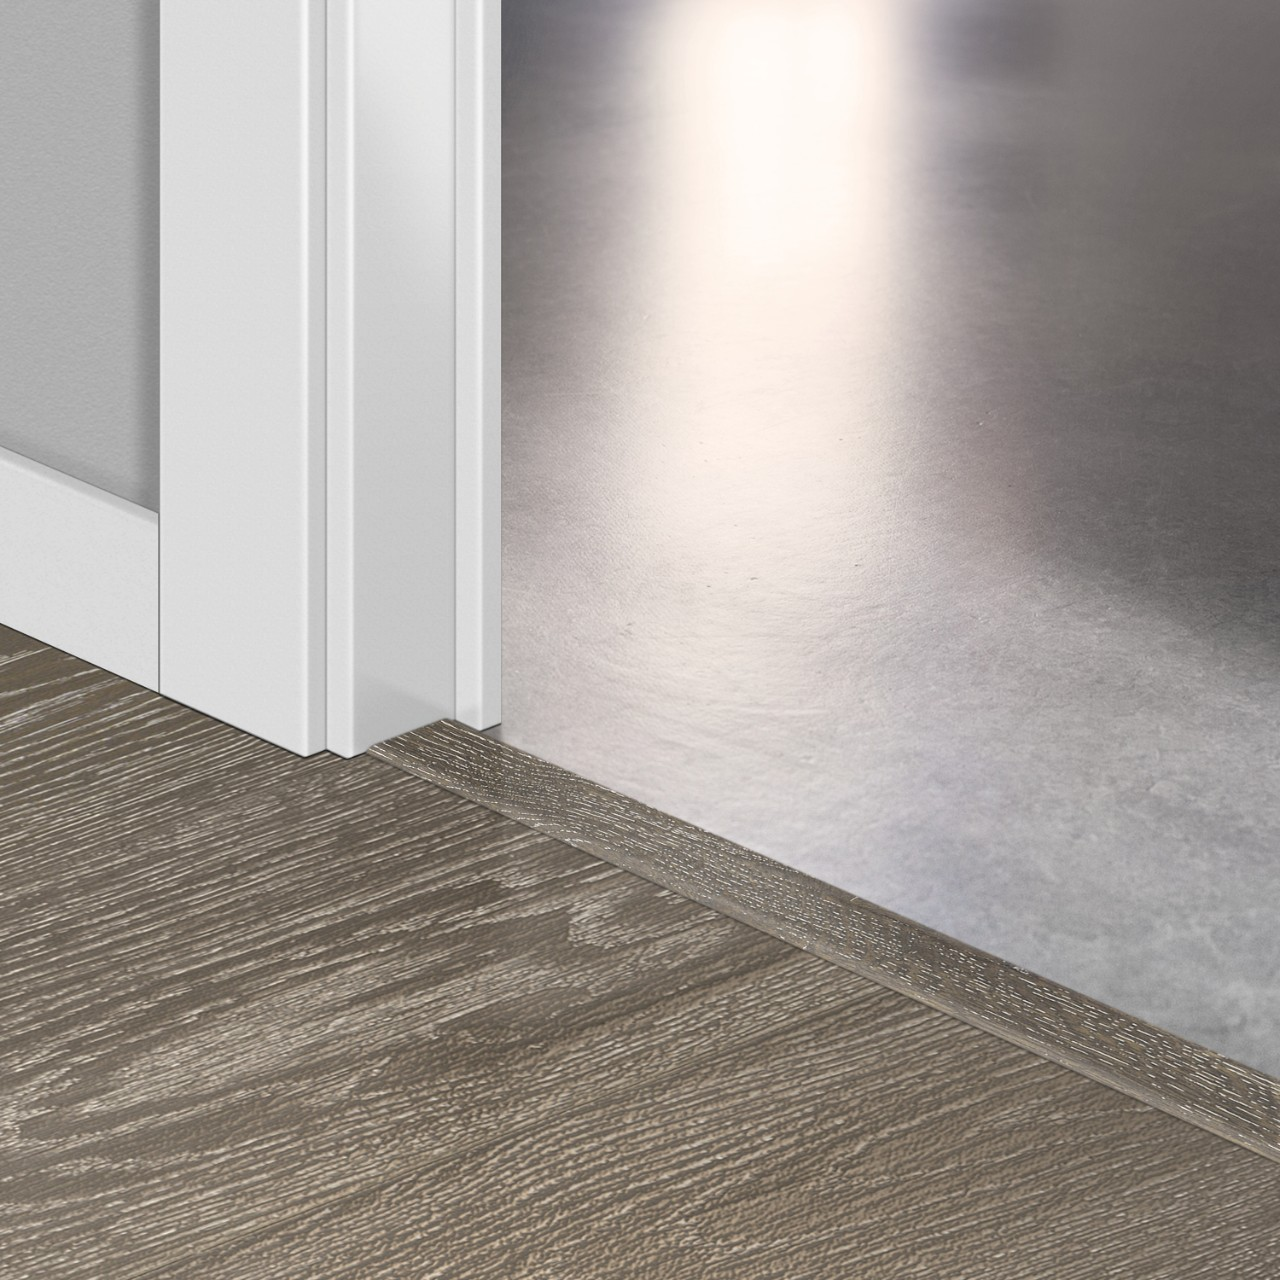 QSWINCP Parquet Accessories Incizo Profile (matching colour) QSWINCP01346